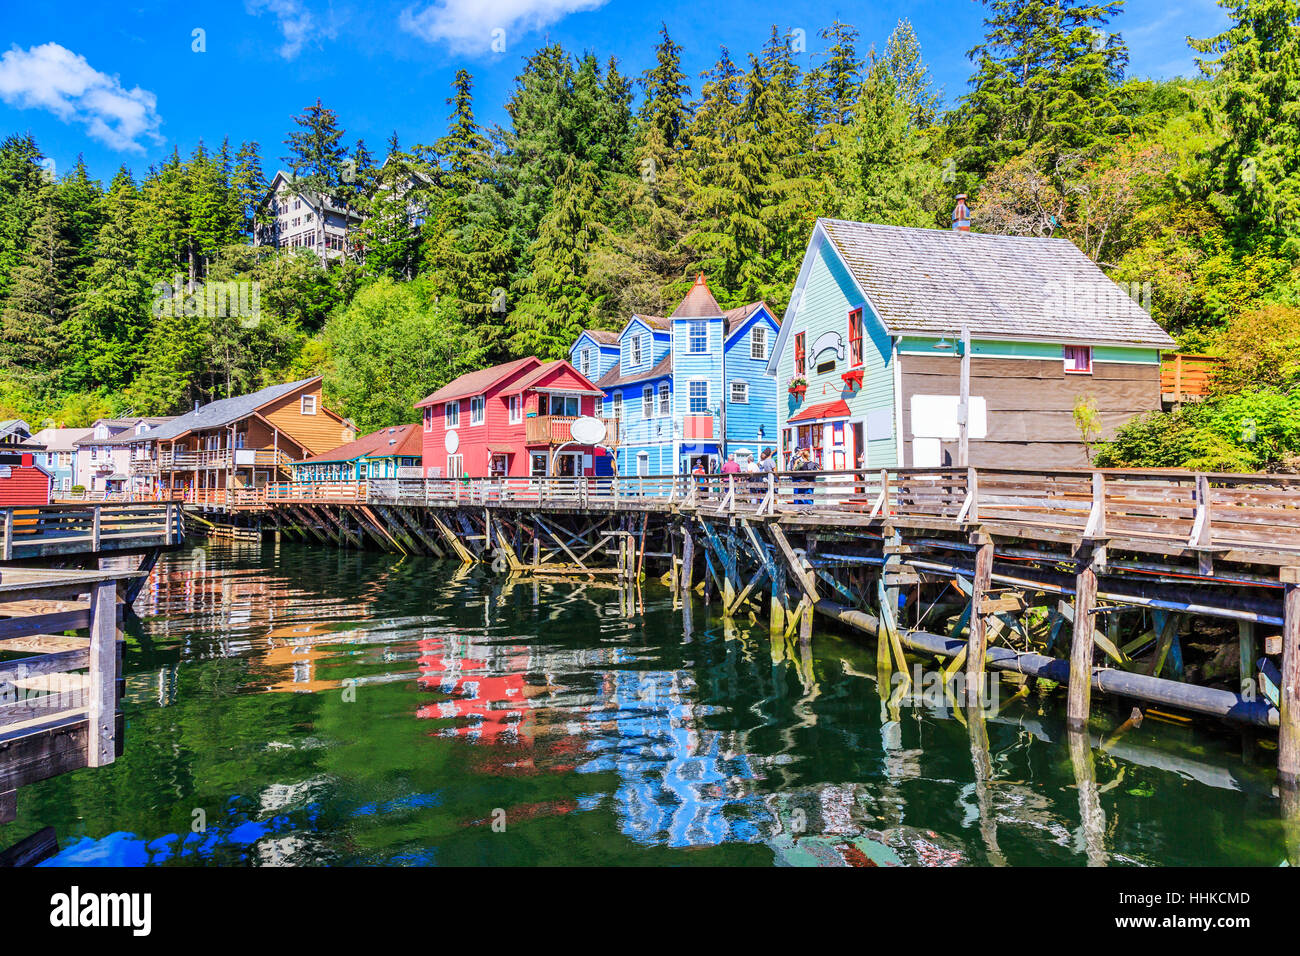 Ketchikan, Alaska. Creek Street, the historic broadwalk. - Stock Image